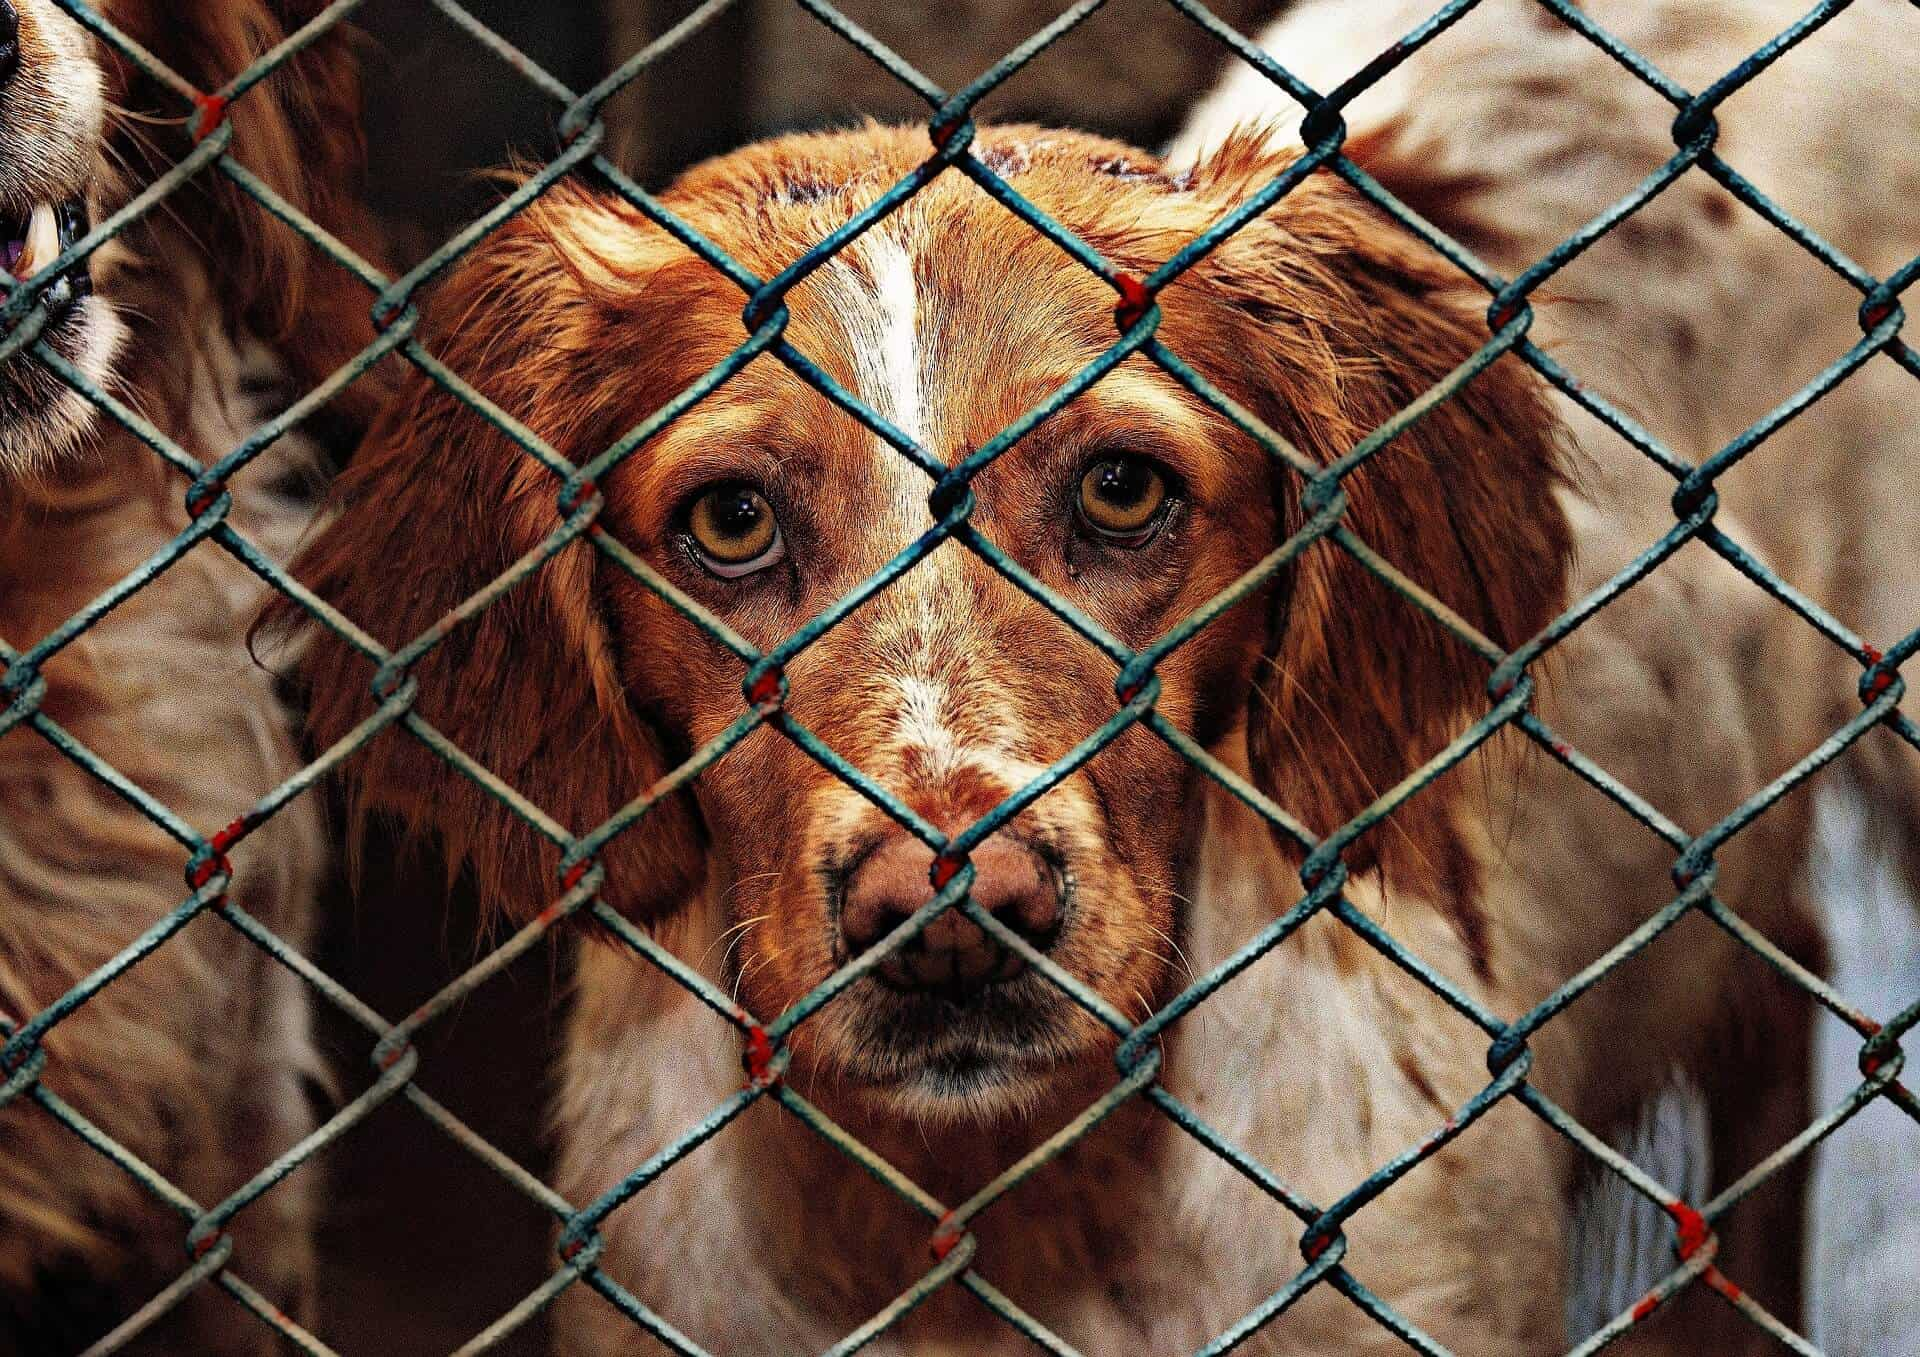 Why Should You Adopt A Rescue Dog?